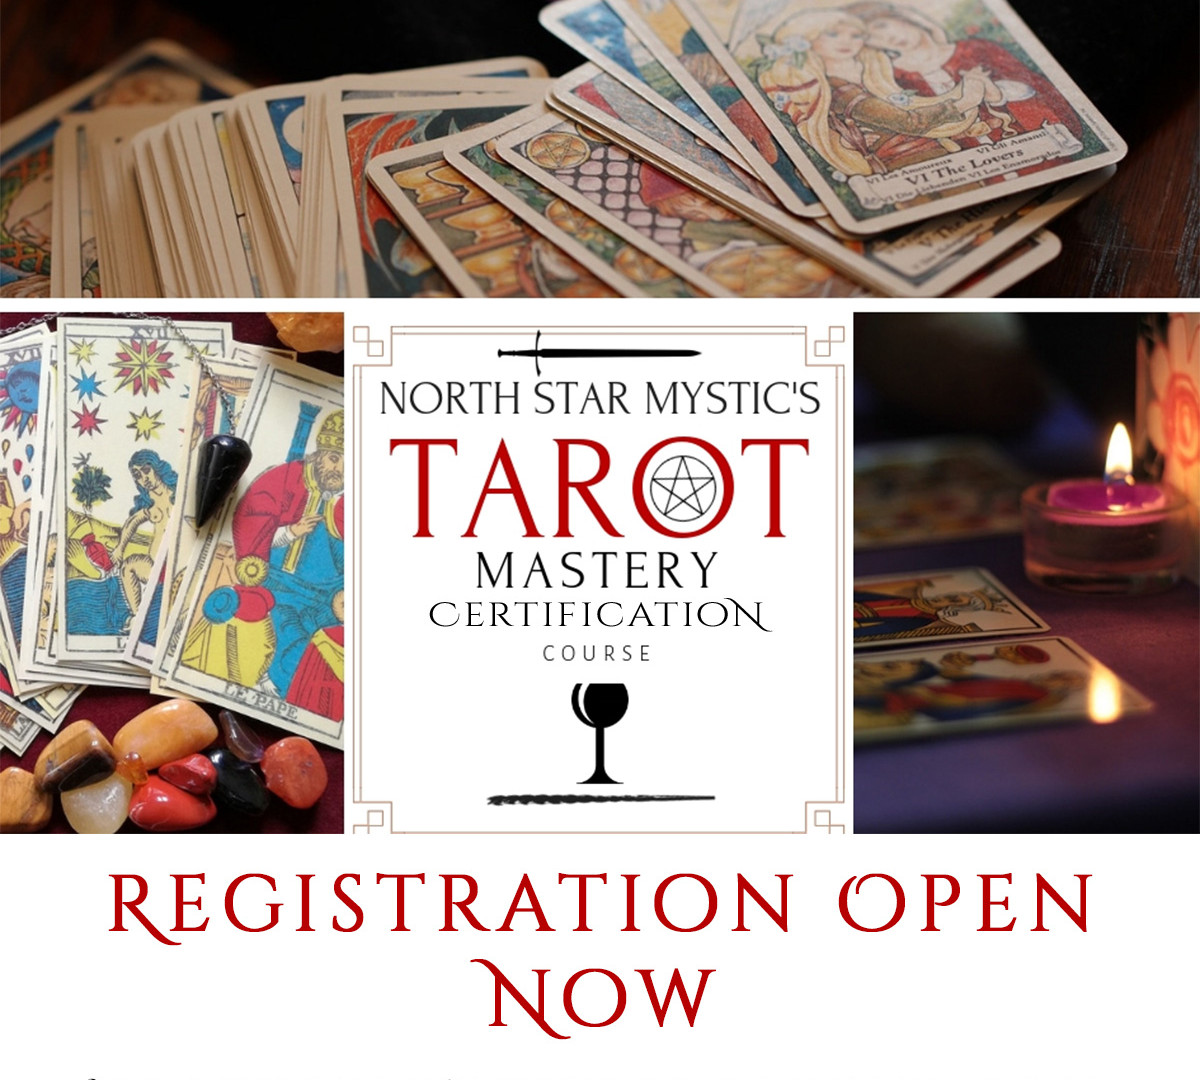 tarot registraion.jpg